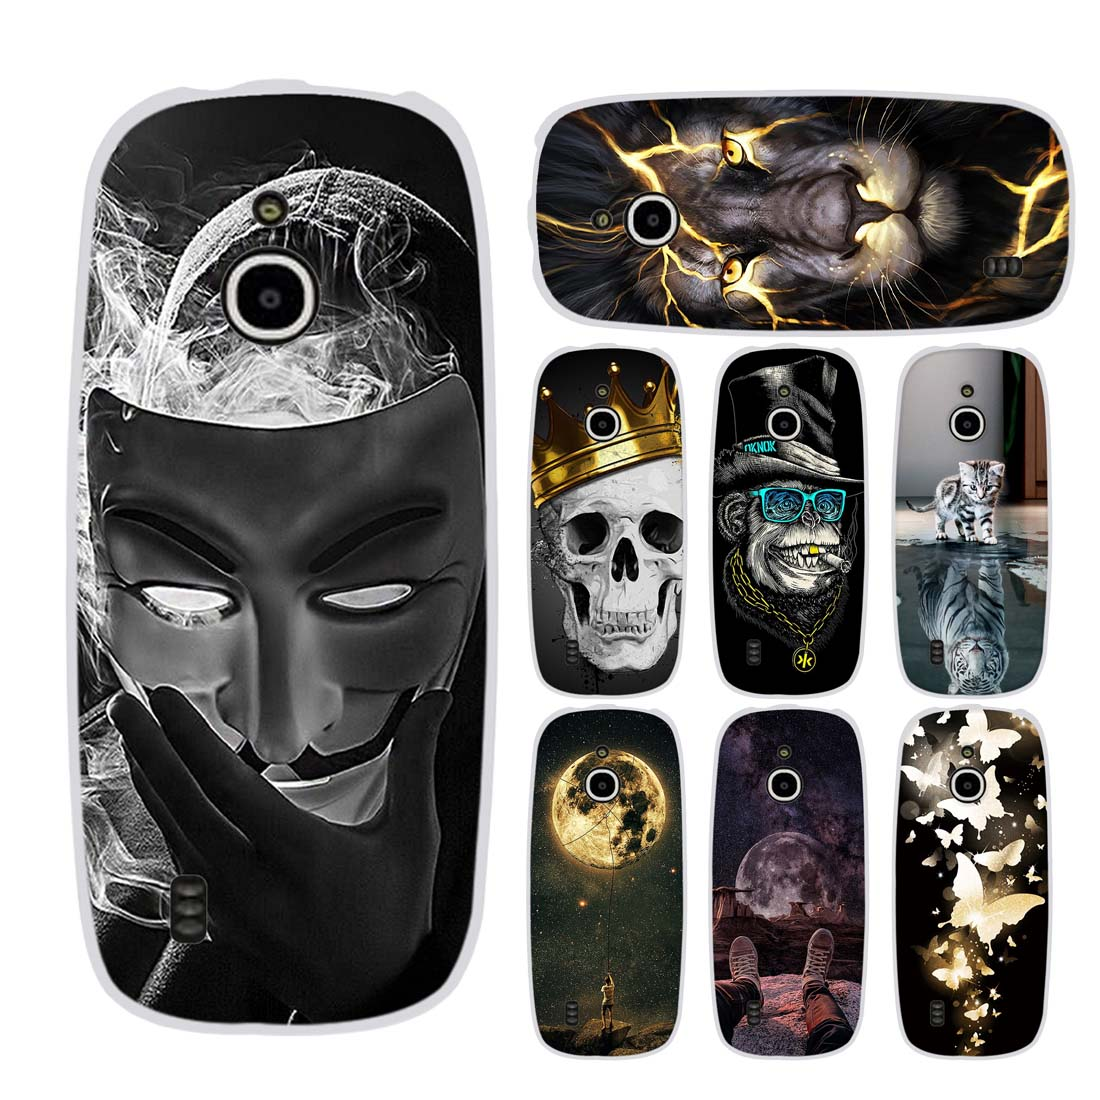 For <font><b>Nokia</b></font> <font><b>3310</b></font> <font><b>3G</b></font> Case Silicone Phone <font><b>Cover</b></font> For <font><b>Nokia</b></font> <font><b>3310</b></font> 4G Full Protective Bumper Shell Case For <font><b>Nokia</b></font> <font><b>3310</b></font> <font><b>3G</b></font> 4G <font><b>Covers</b></font> Capa image